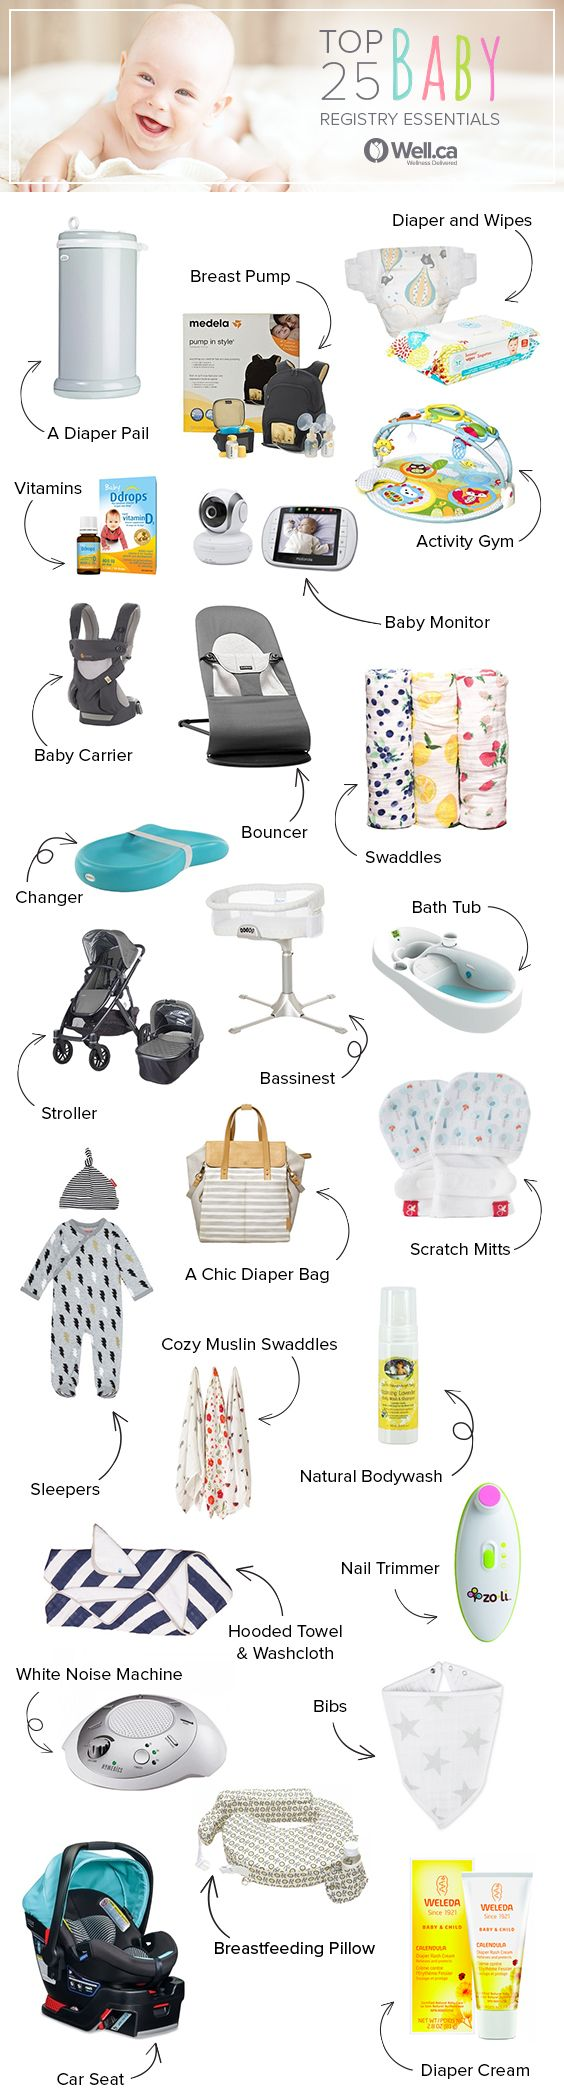 Our Top 25 Baby Registry Essentials! Click through to learn more.